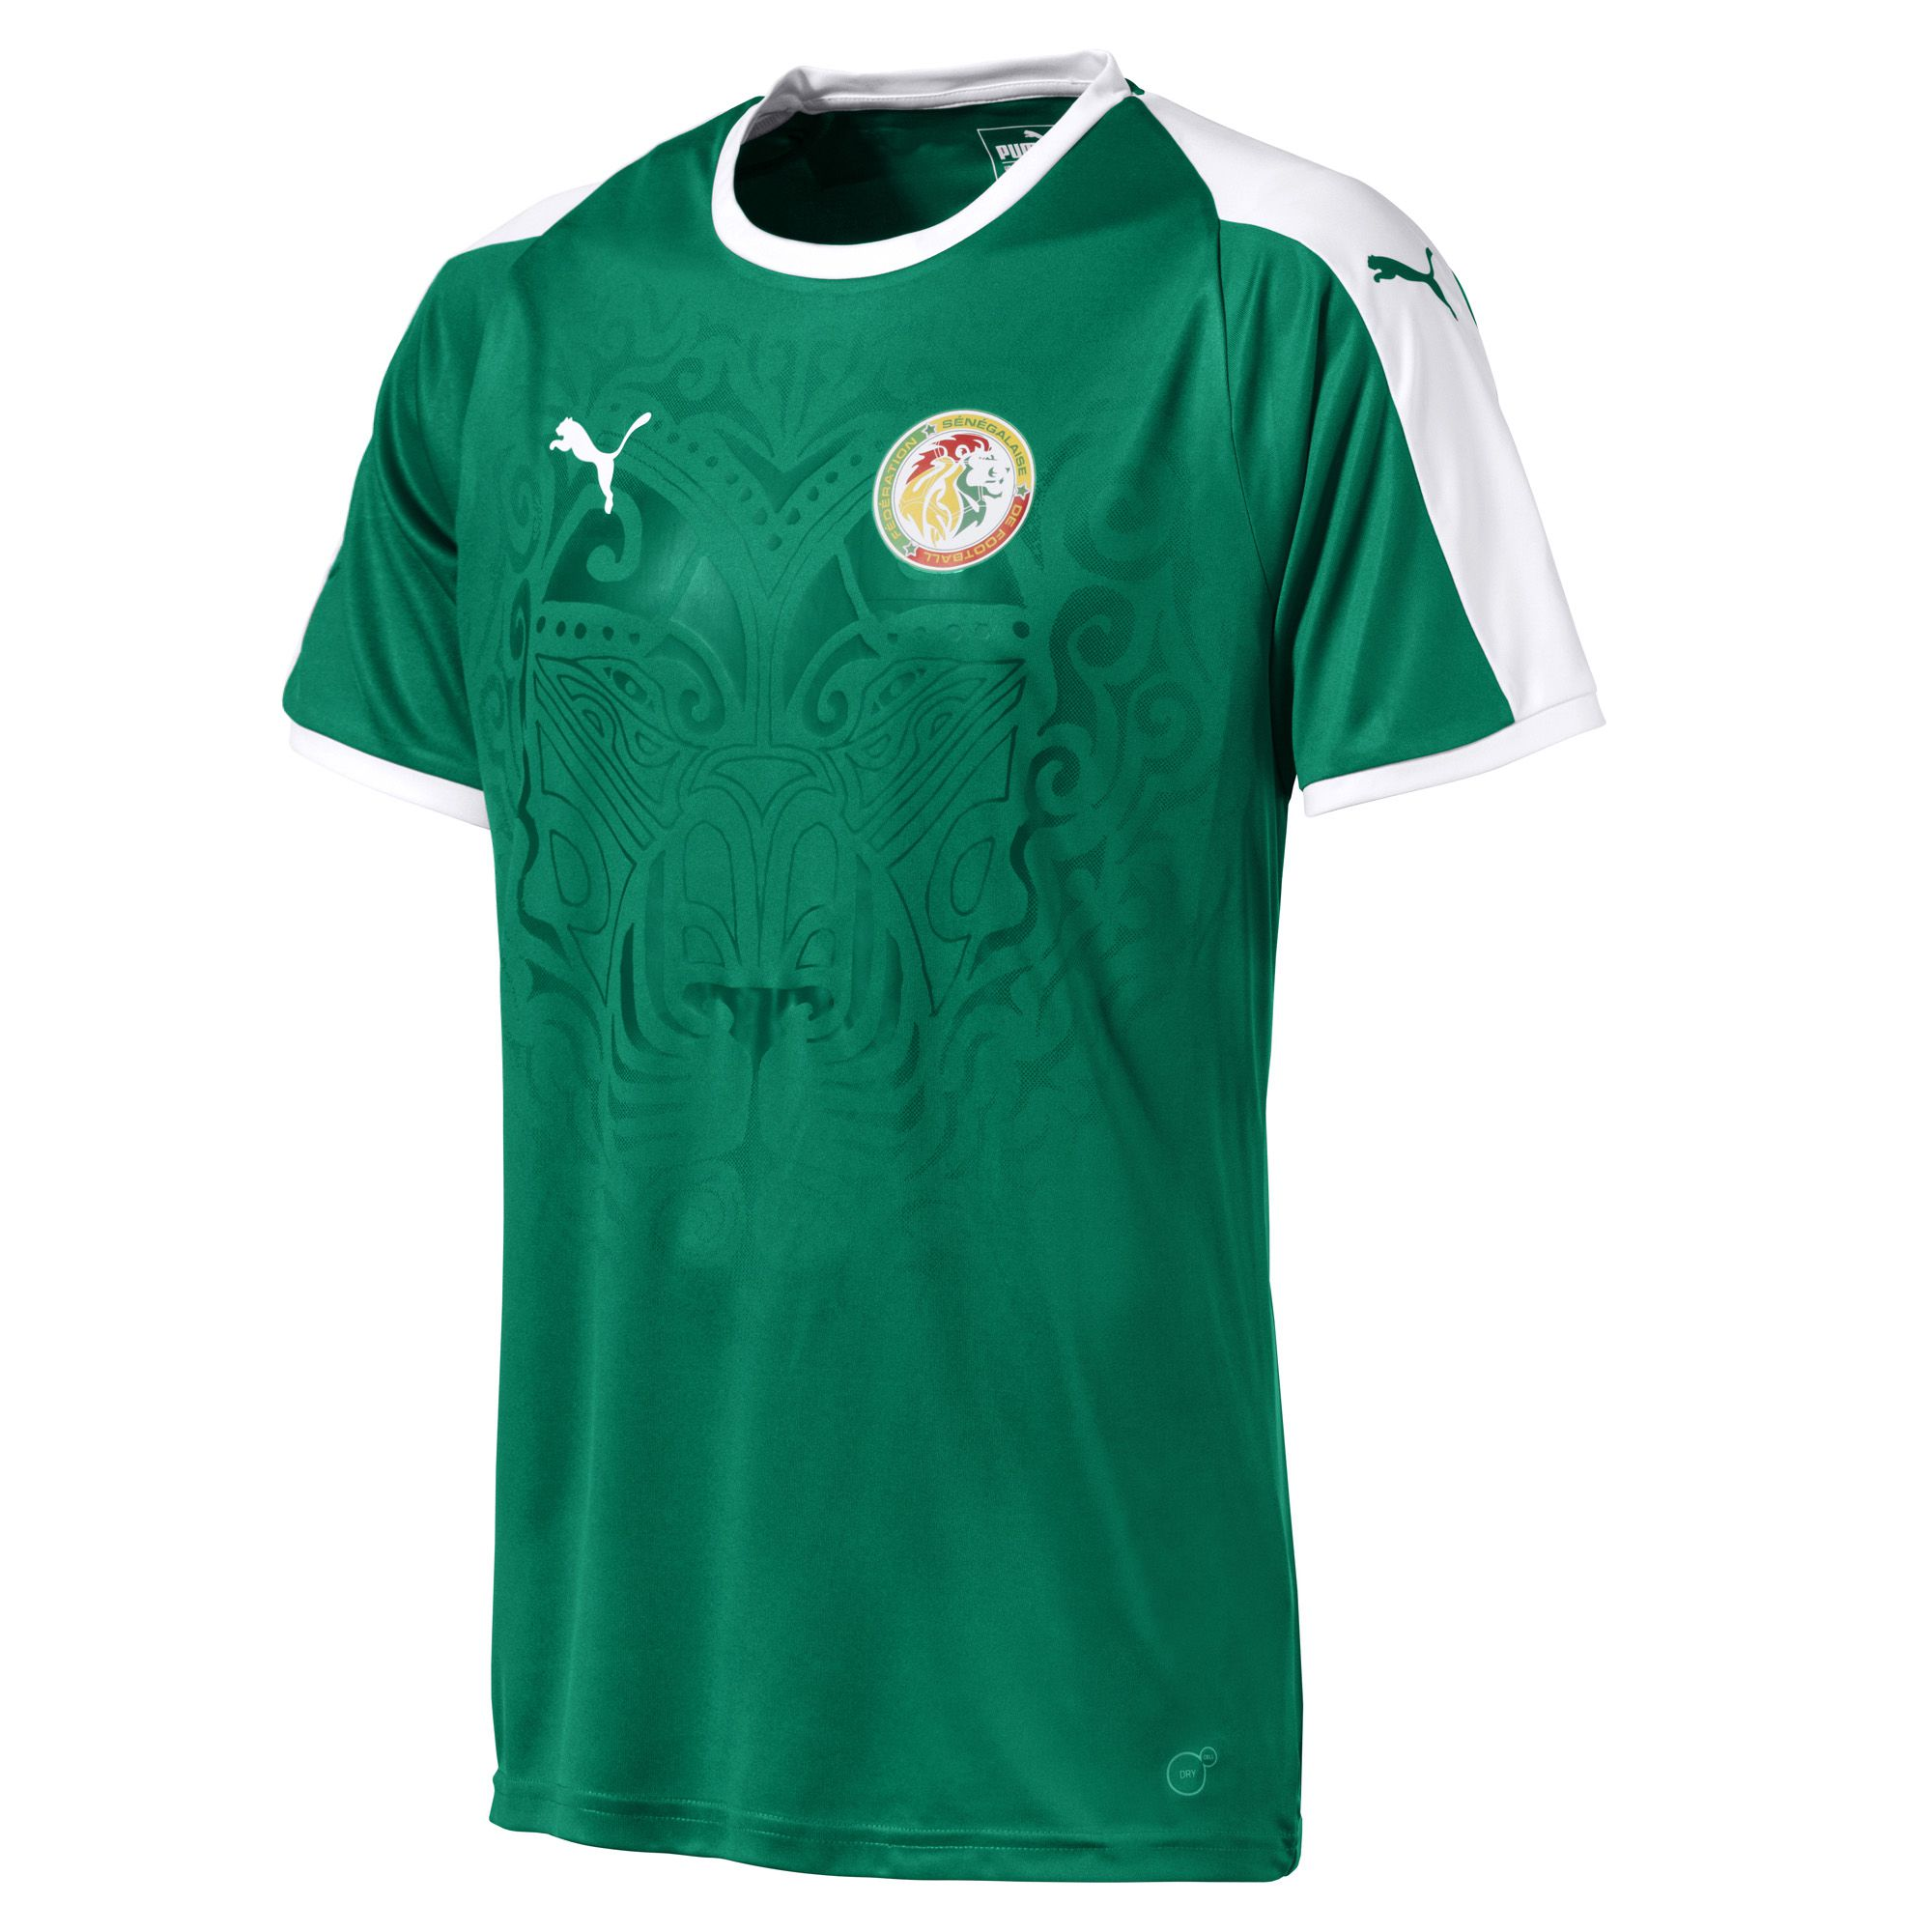 ... Senegal 2018 World Cup Puma Home Shirt · Click to enlarge image  senegal 2018 world cup puma away shirt a.jpg ... b7d2ba180